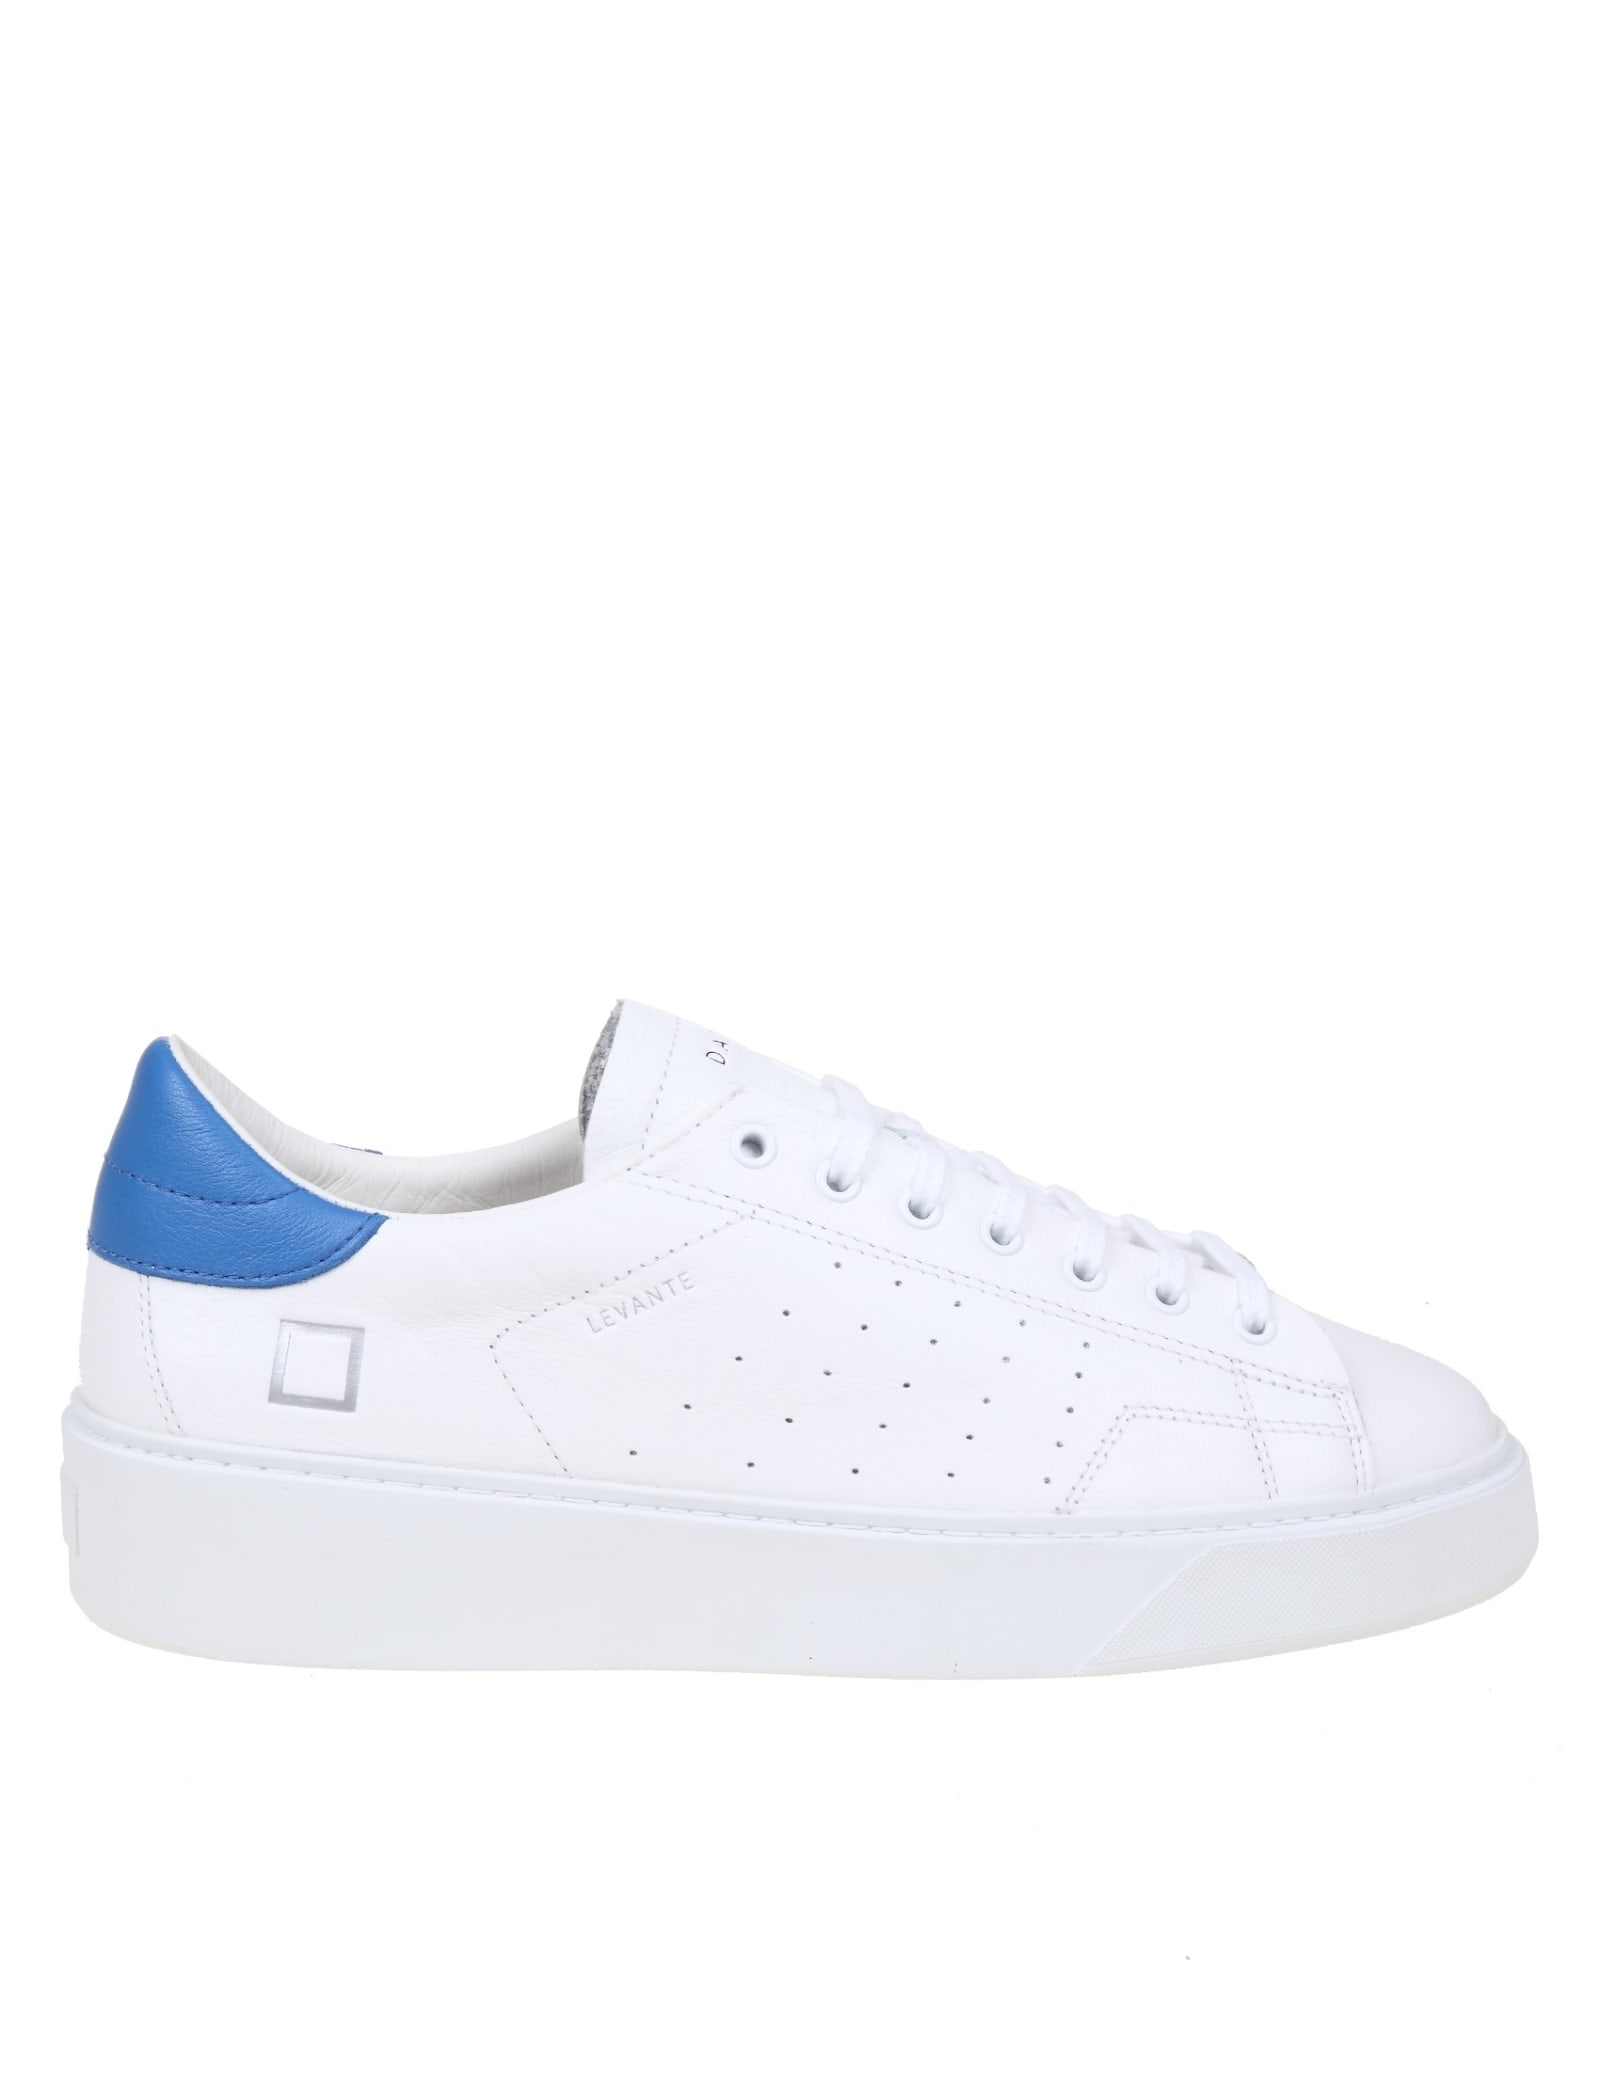 D.a.t.e. Levante Snakers In White Leather